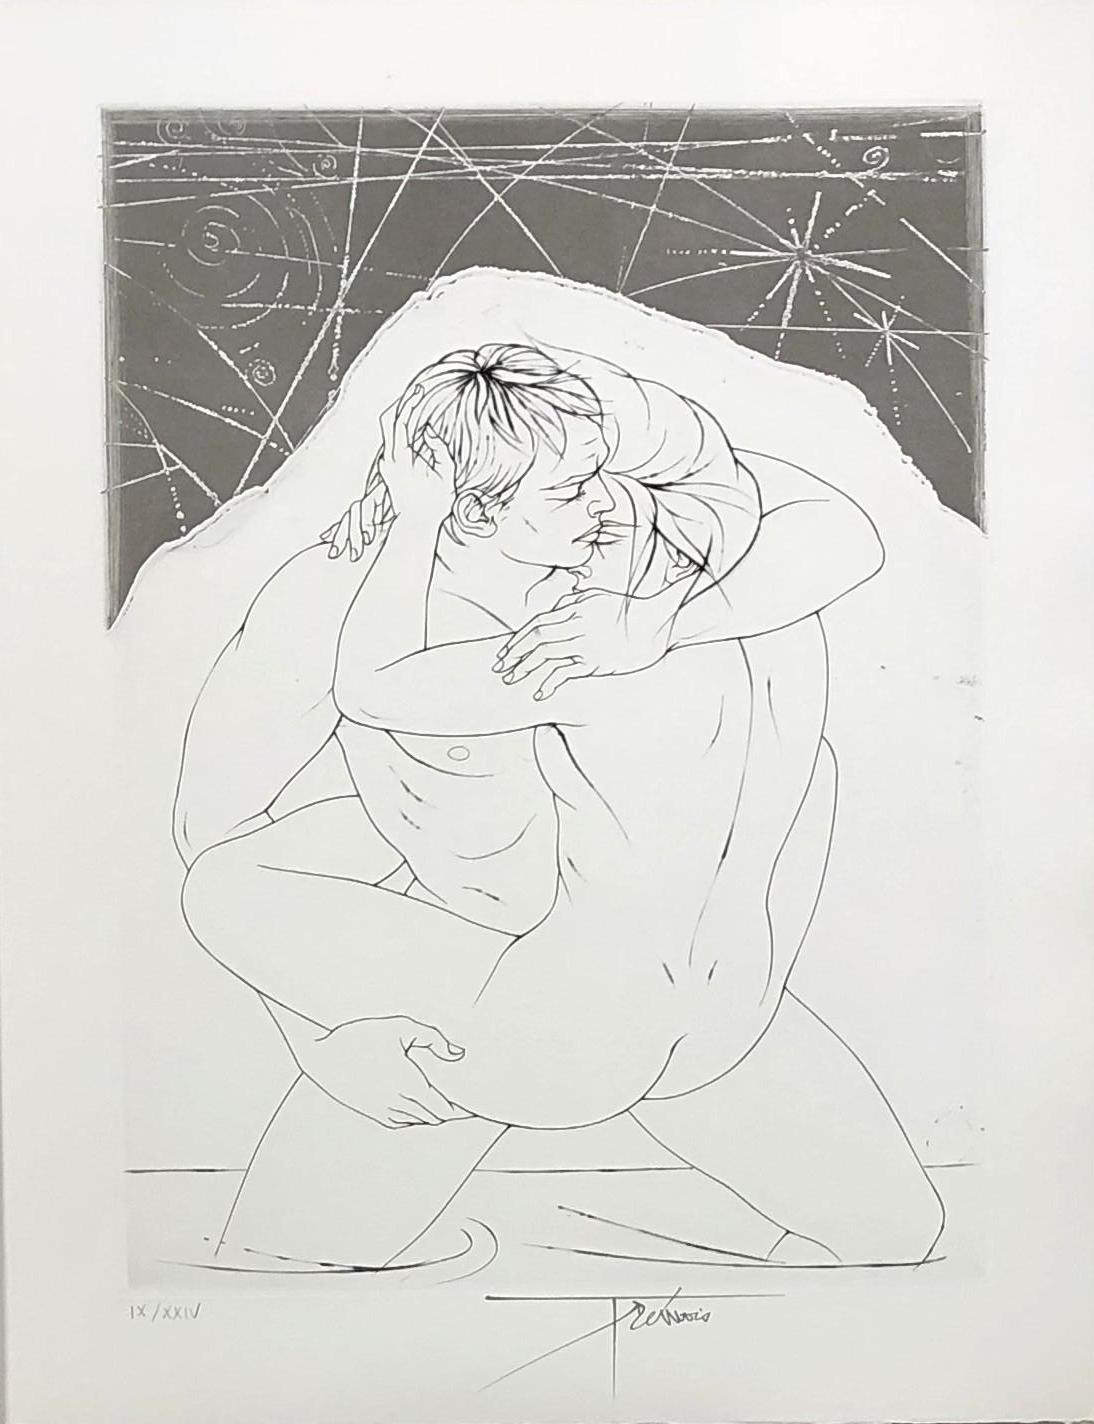 A Loving Couple - Original etching handsigned and numbered